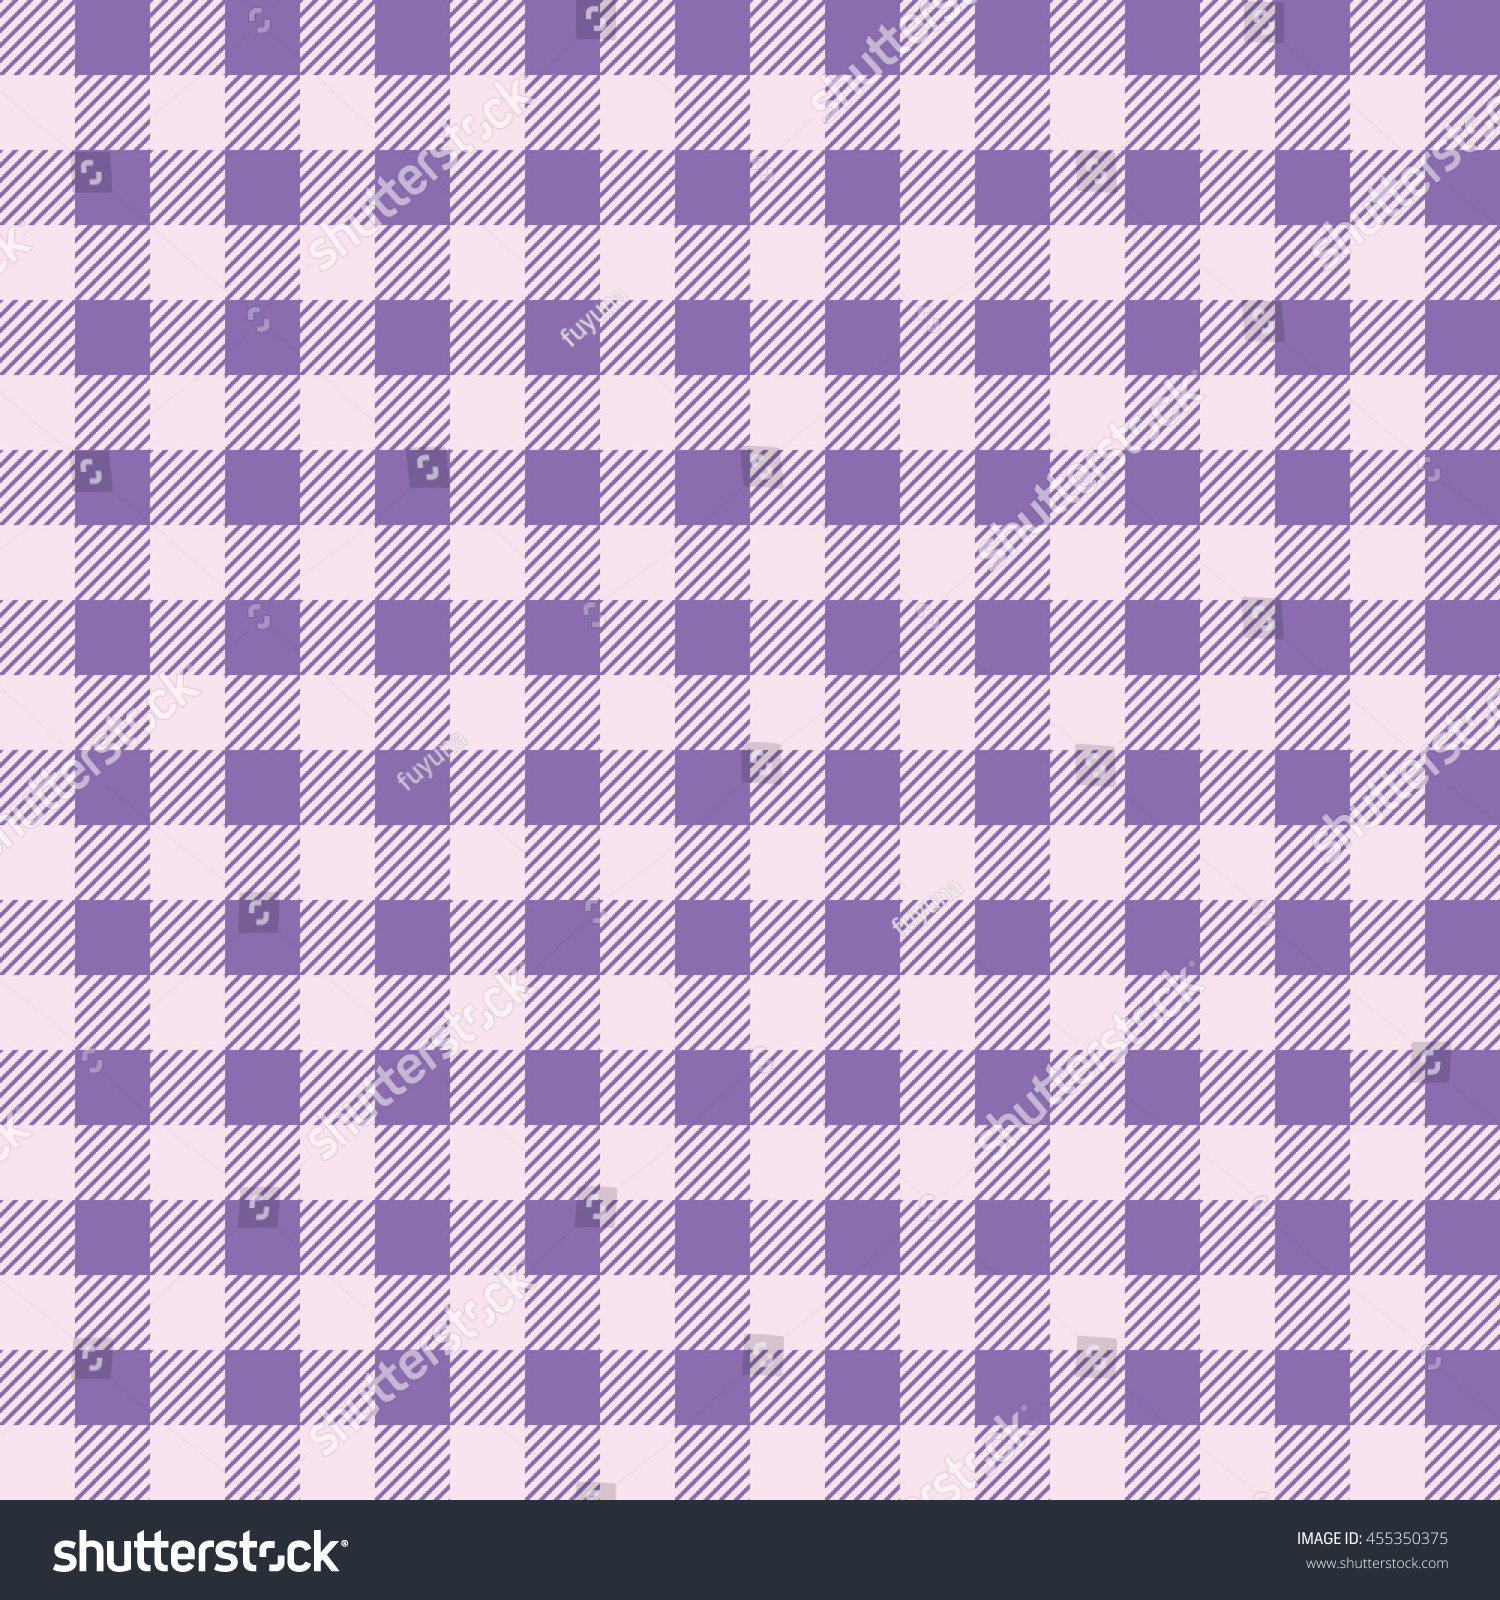 Charmant Plaid Kitchen Tablecloth Pattern With Vintage Purple Color. Seamless Pastel  Geometric Square Checkered Fabric Pattern